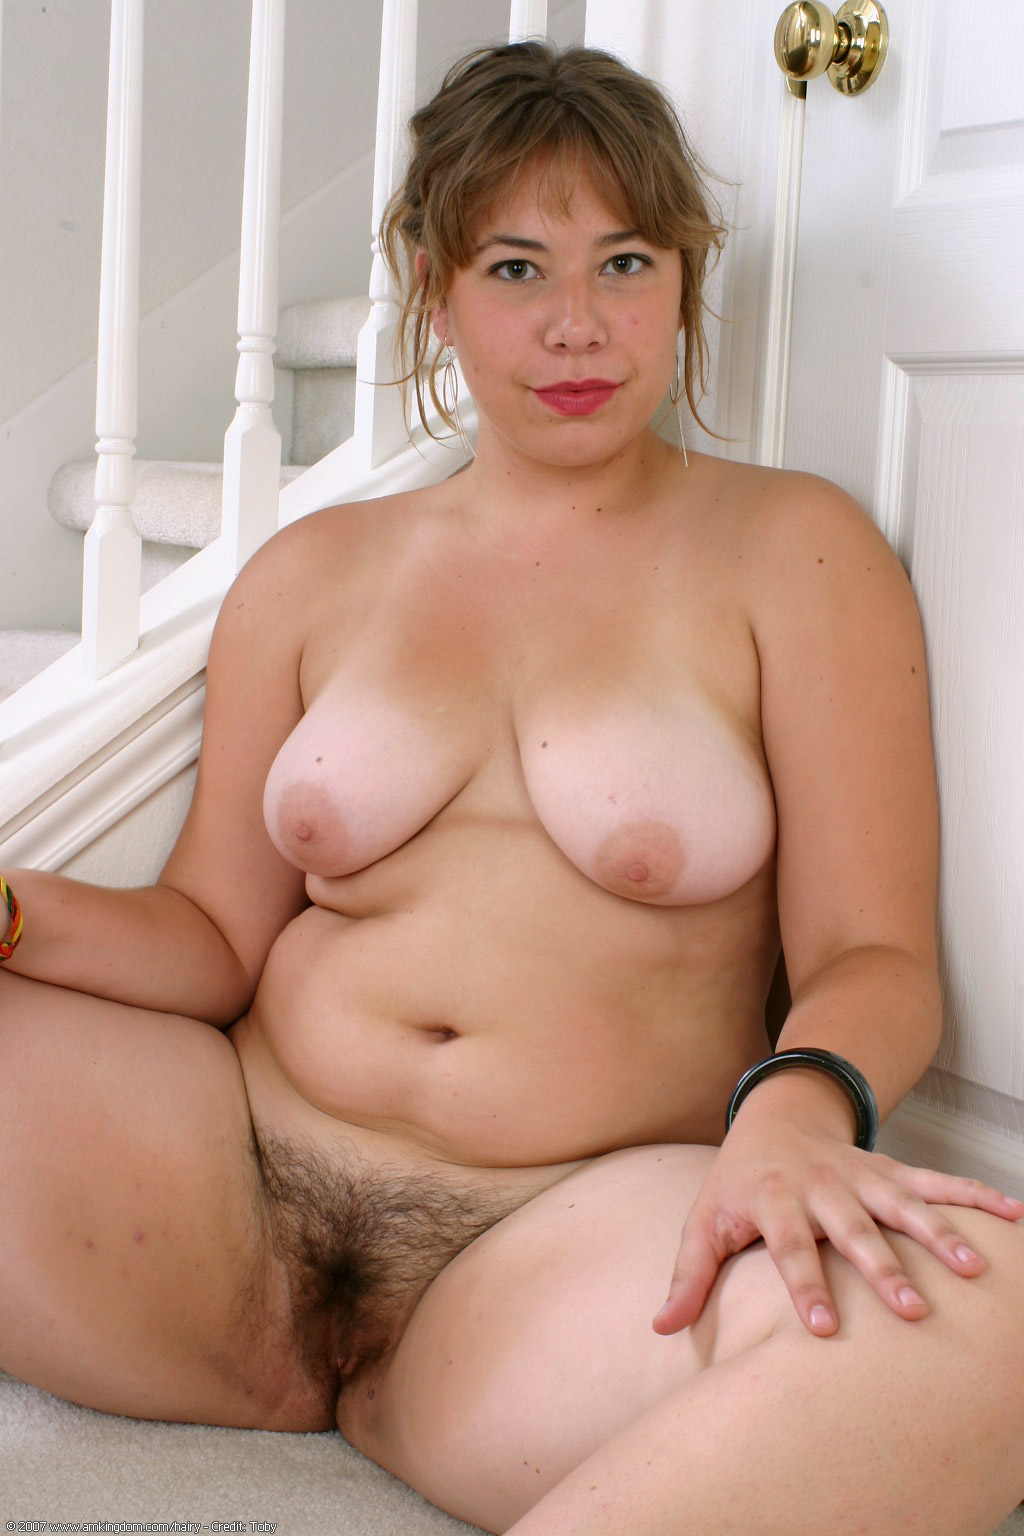 Apologise, but, Hairy natural nude mature women that